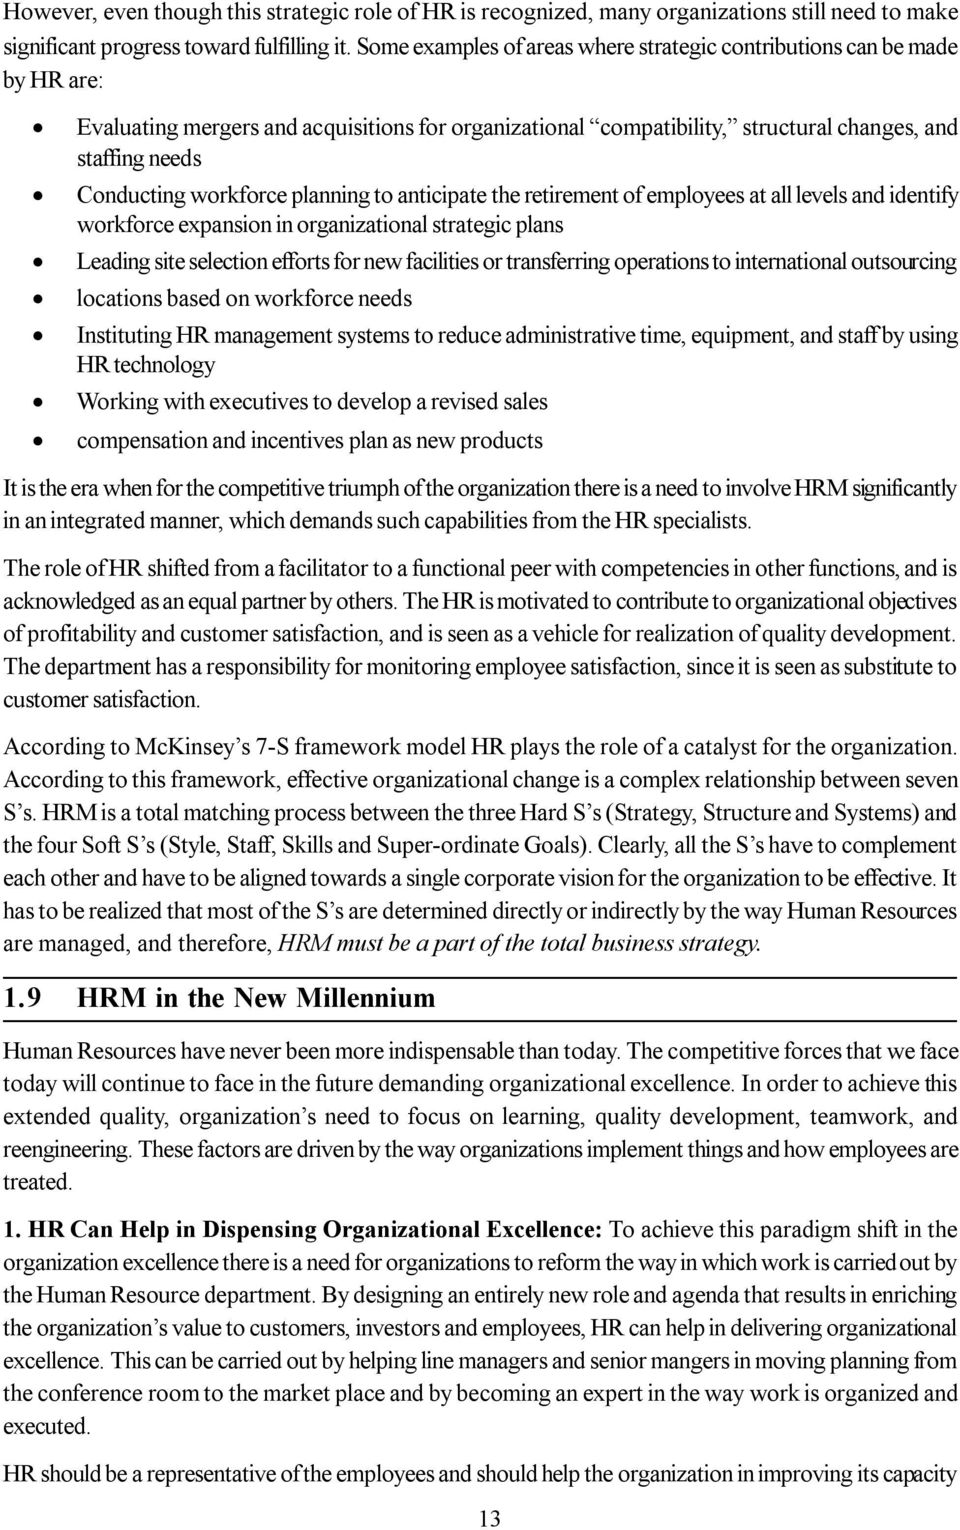 unit introduction to human resource management pdf workforce planning to anticipate the retirement of employees at all levels and identify workforce expansion in